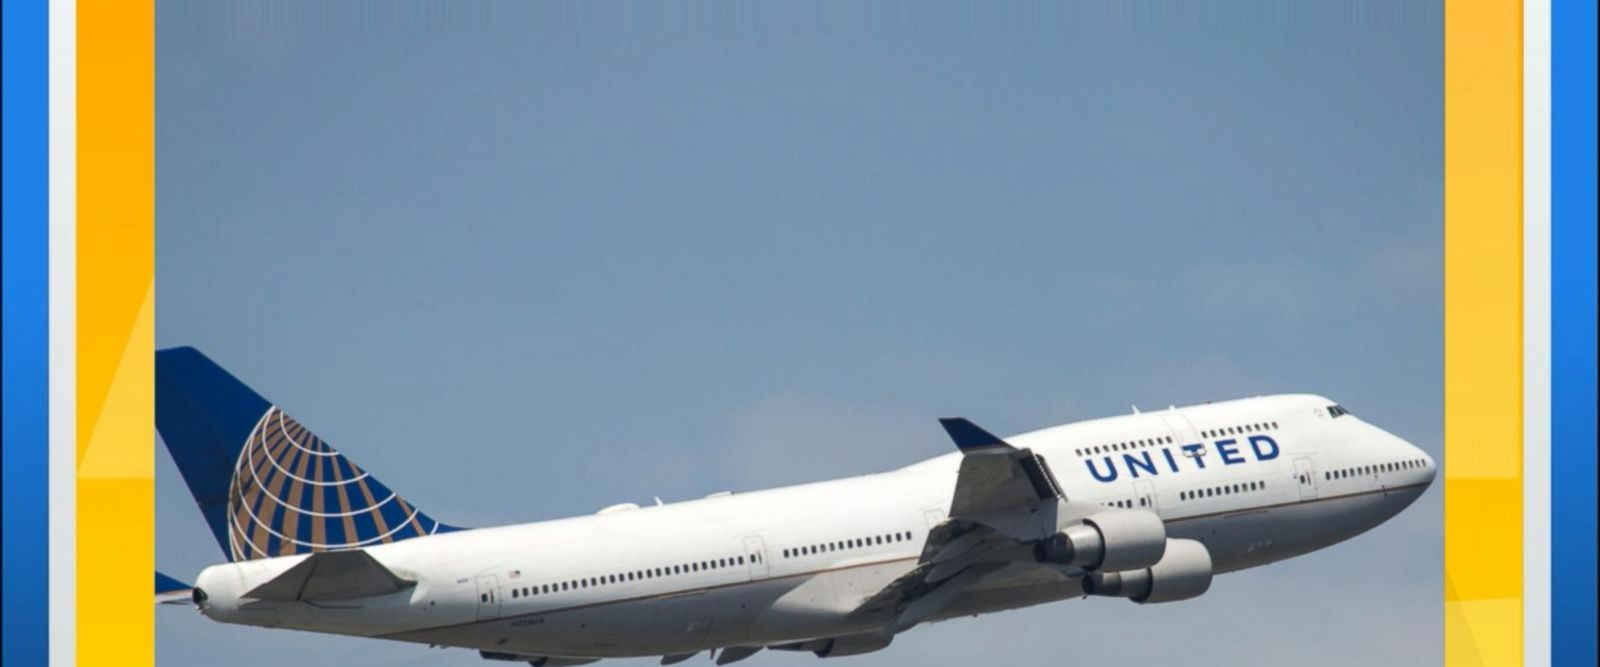 VIDEO: United Airlines 'IT Issue' Grounds All Domestic Flights